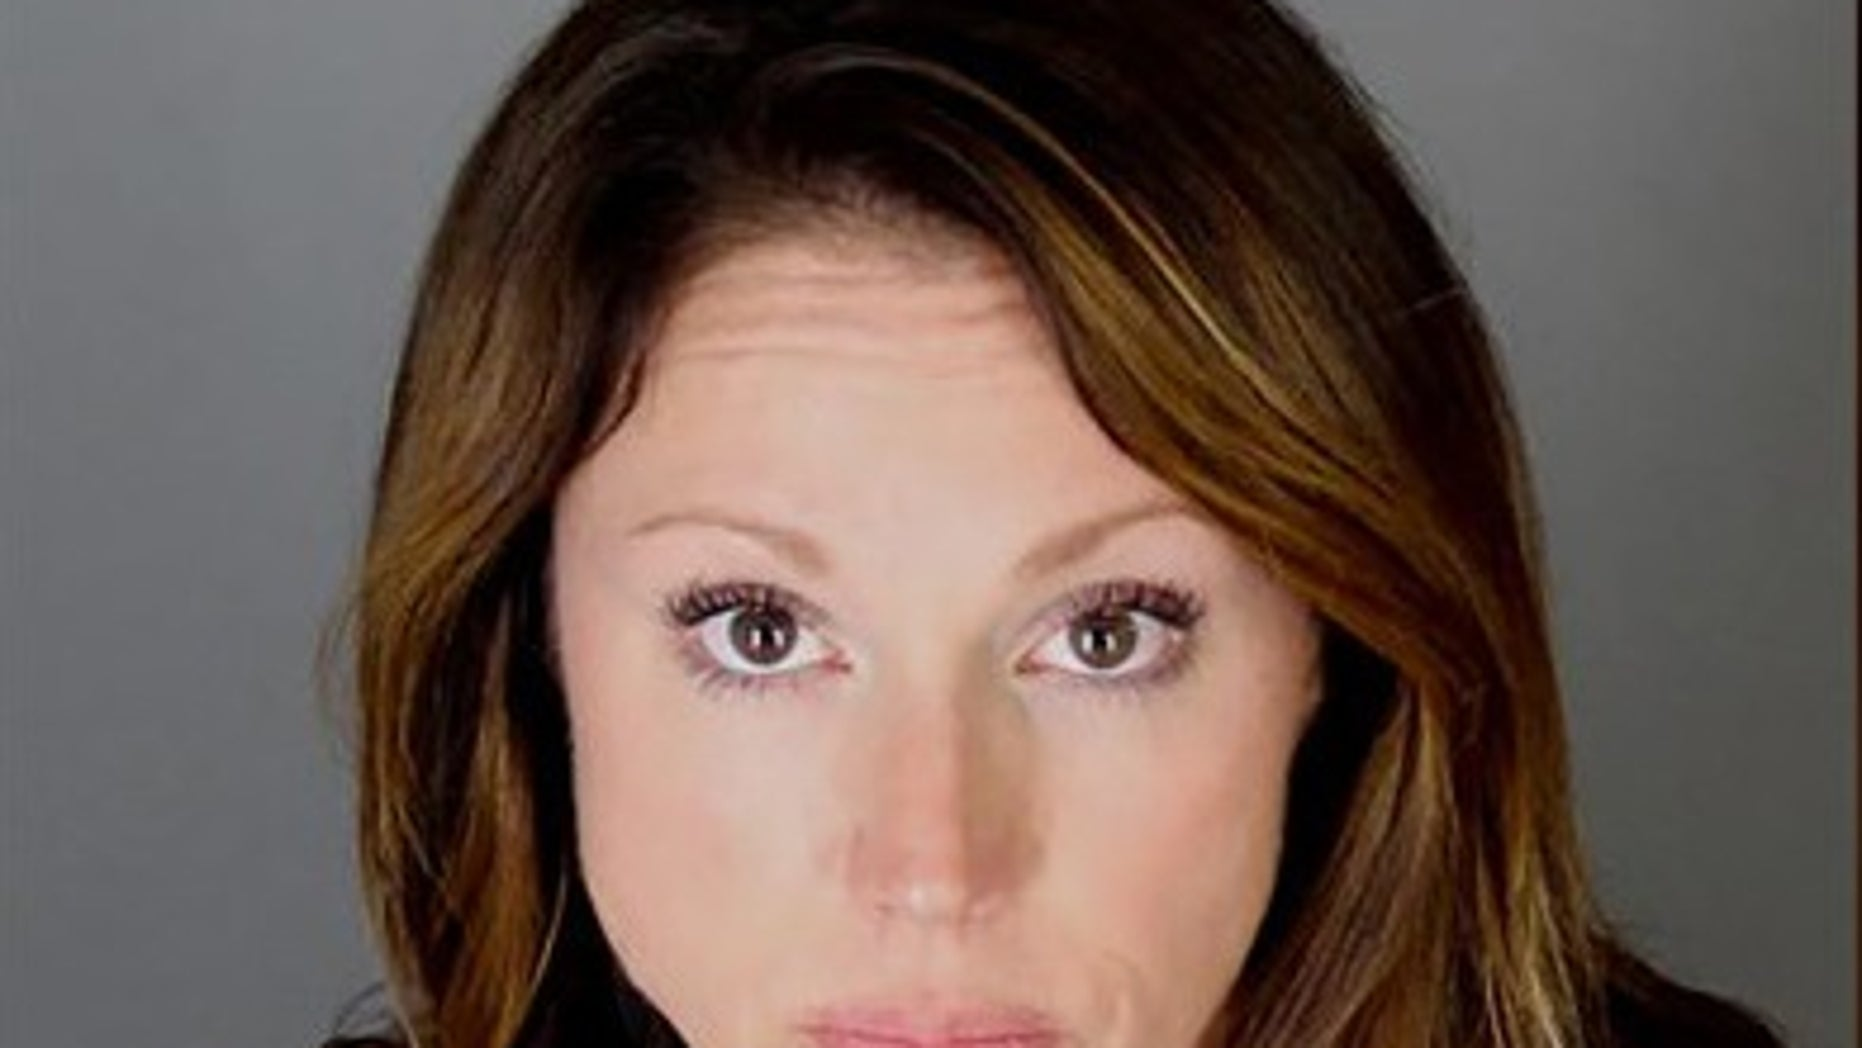 Rebecca Bredow, 40, lost primary custody of her son after she was jailed for refusing to vaccinate him.